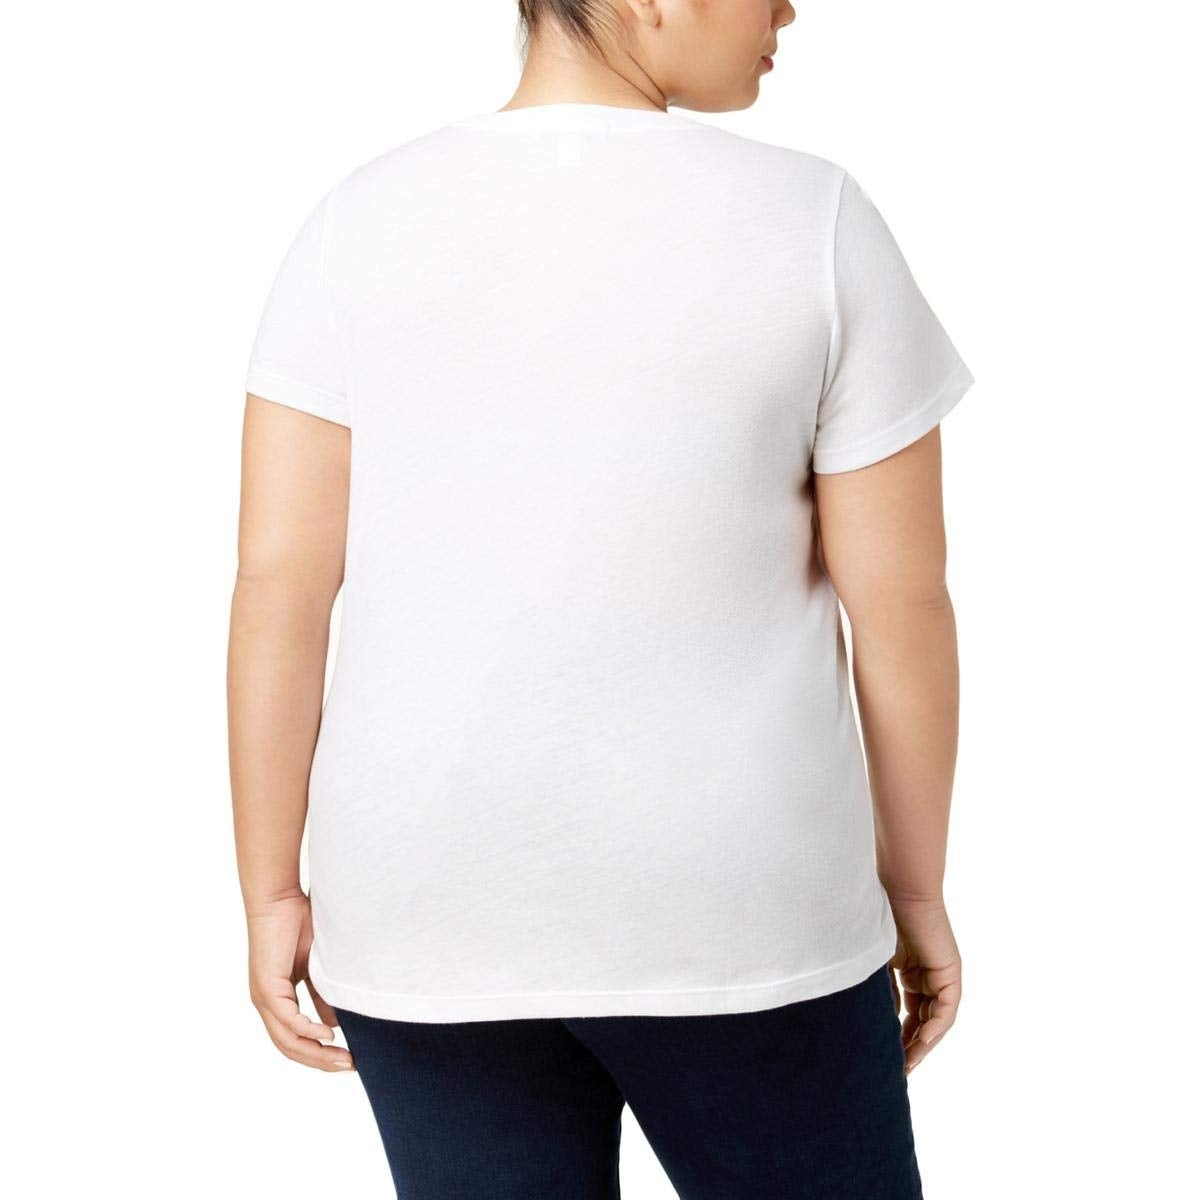 92135b4efe5 Shop Suburban Riot White Women s Size 2X Plus Baby Its Cold Graphic Top -  On Sale - Free Shipping On Orders Over  45 - Overstock - 27280917